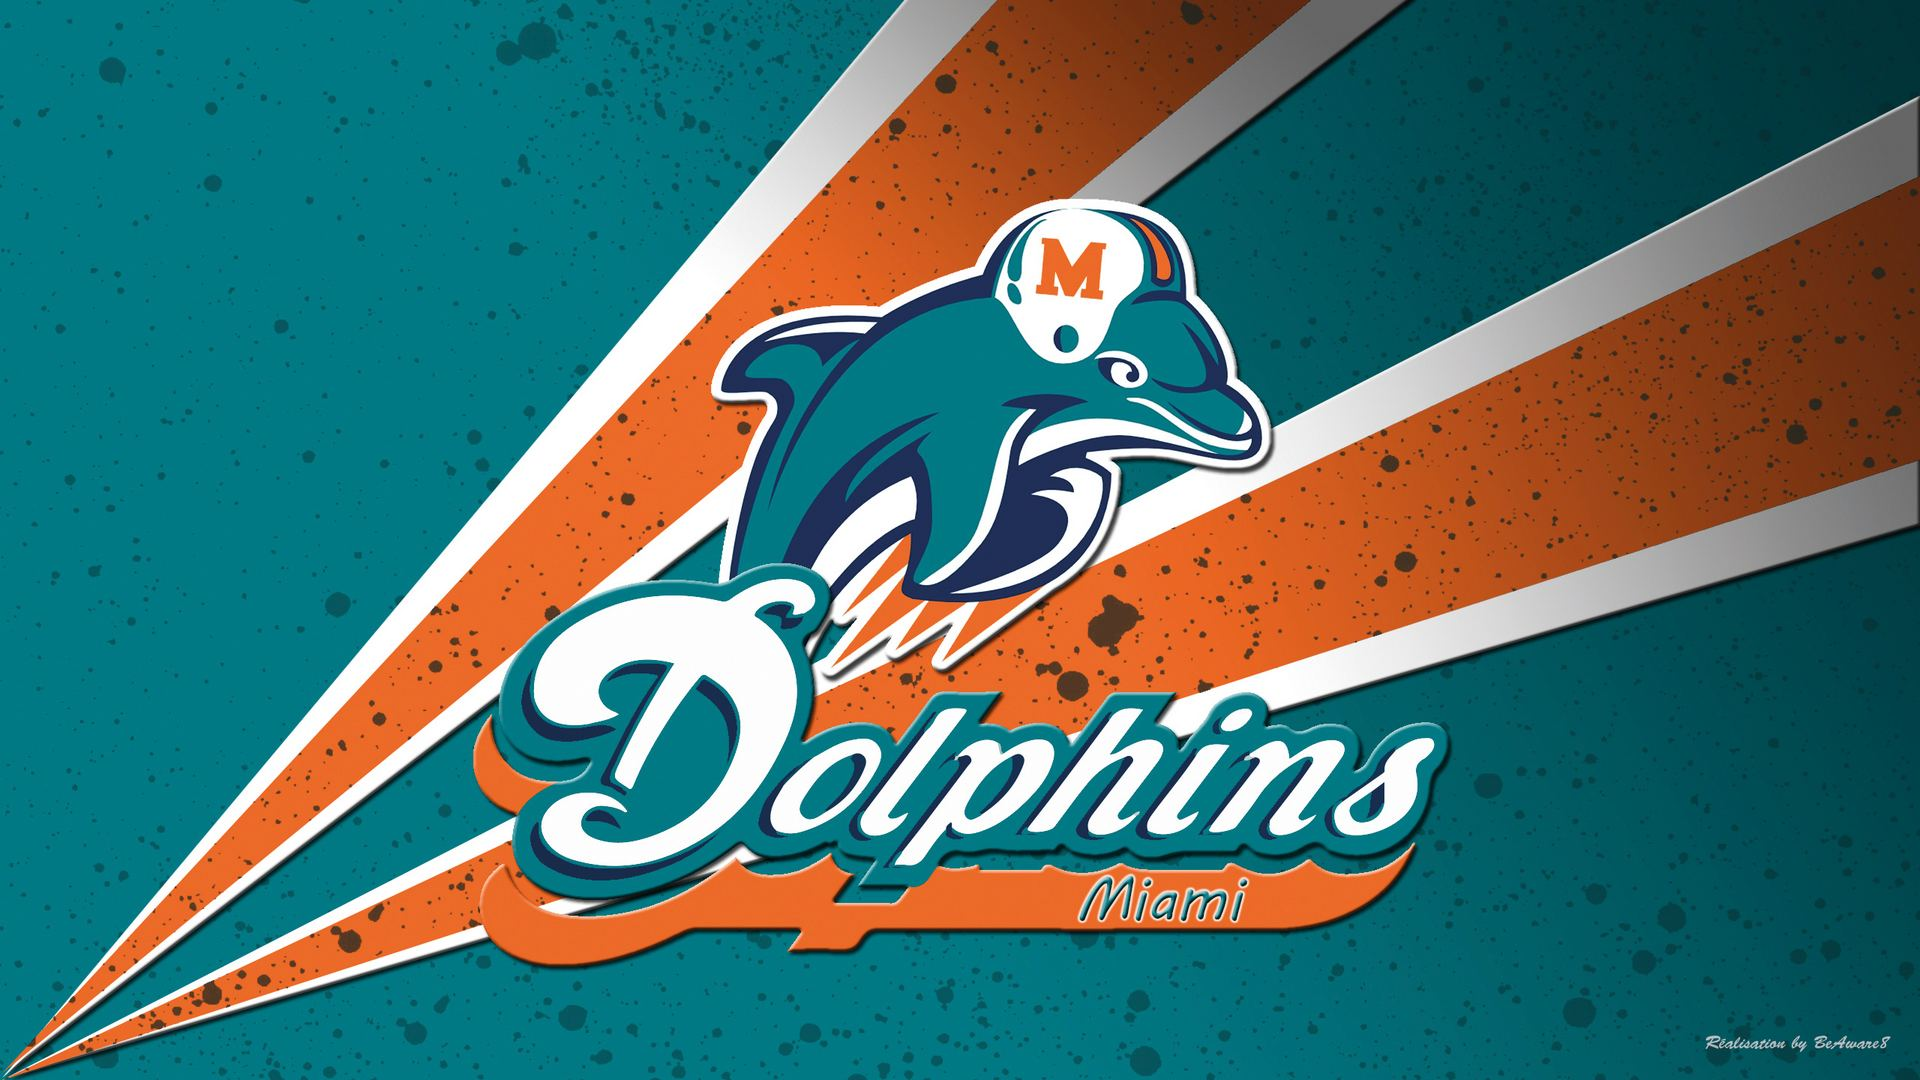 1920x1080 - Miami Dolphins Wallpapers 12